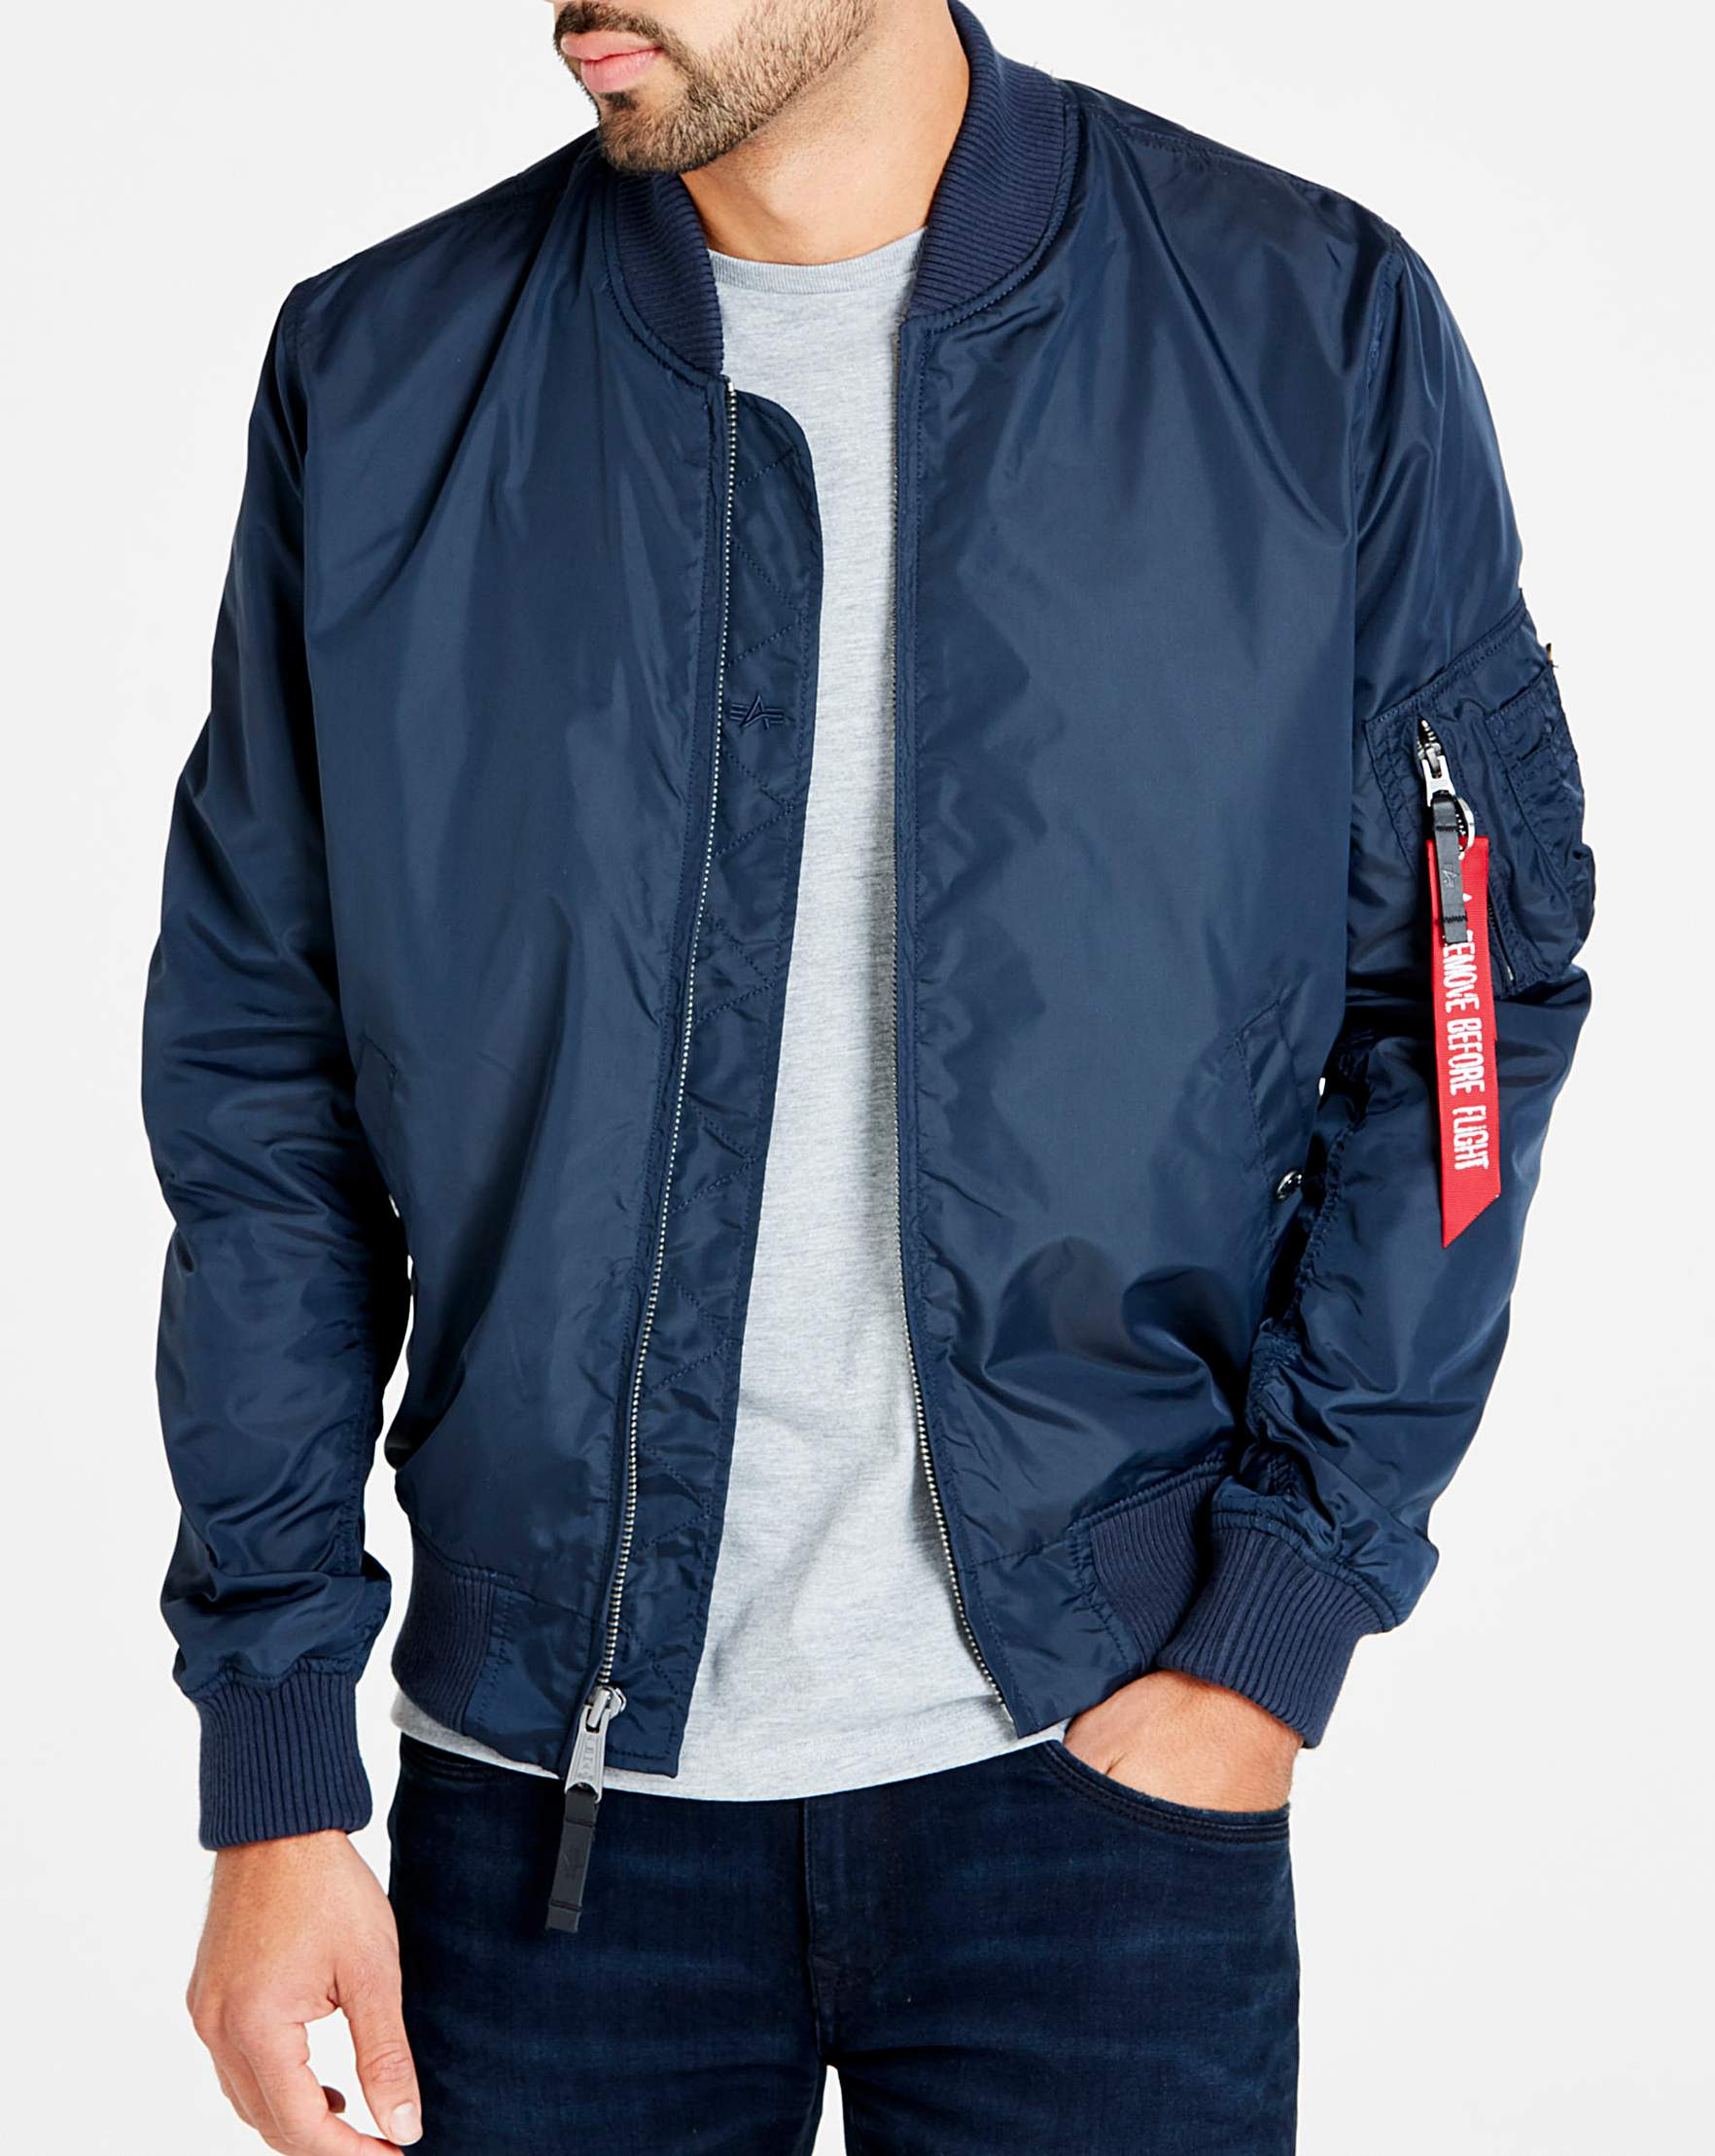 ae5d3f4c7 Alpha Industries MA-1 TT Bomber Jacket